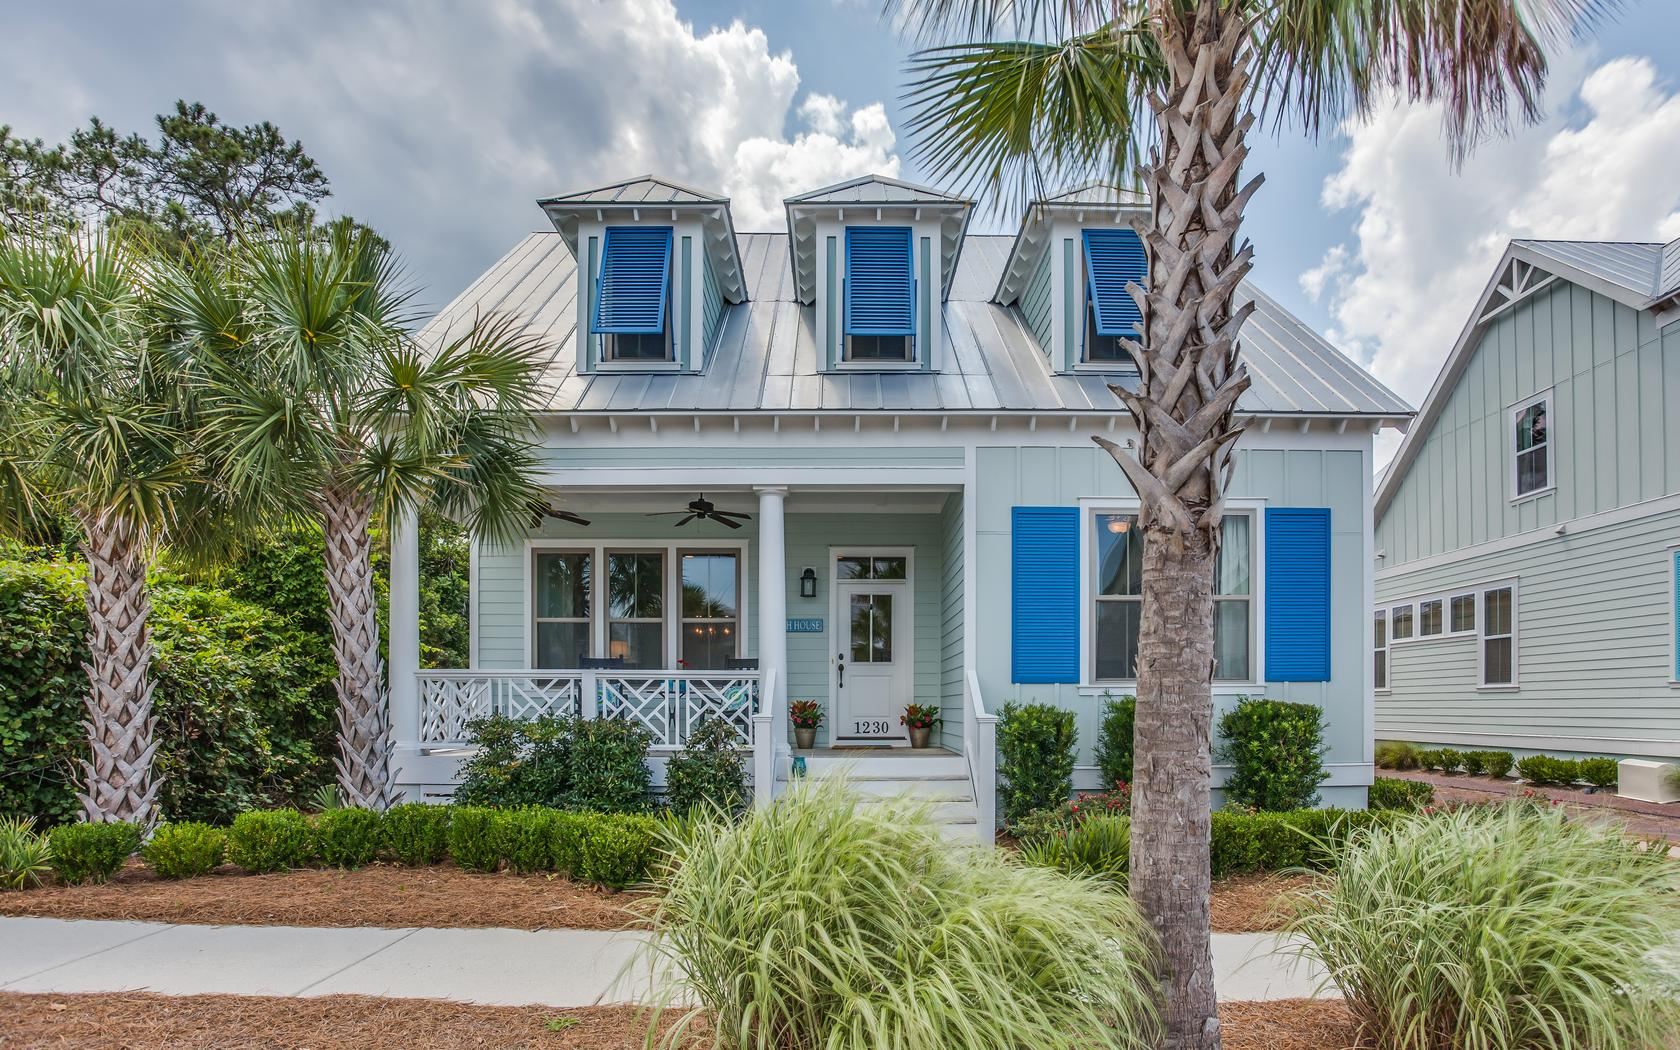 carolina beach real estate photography.jpg